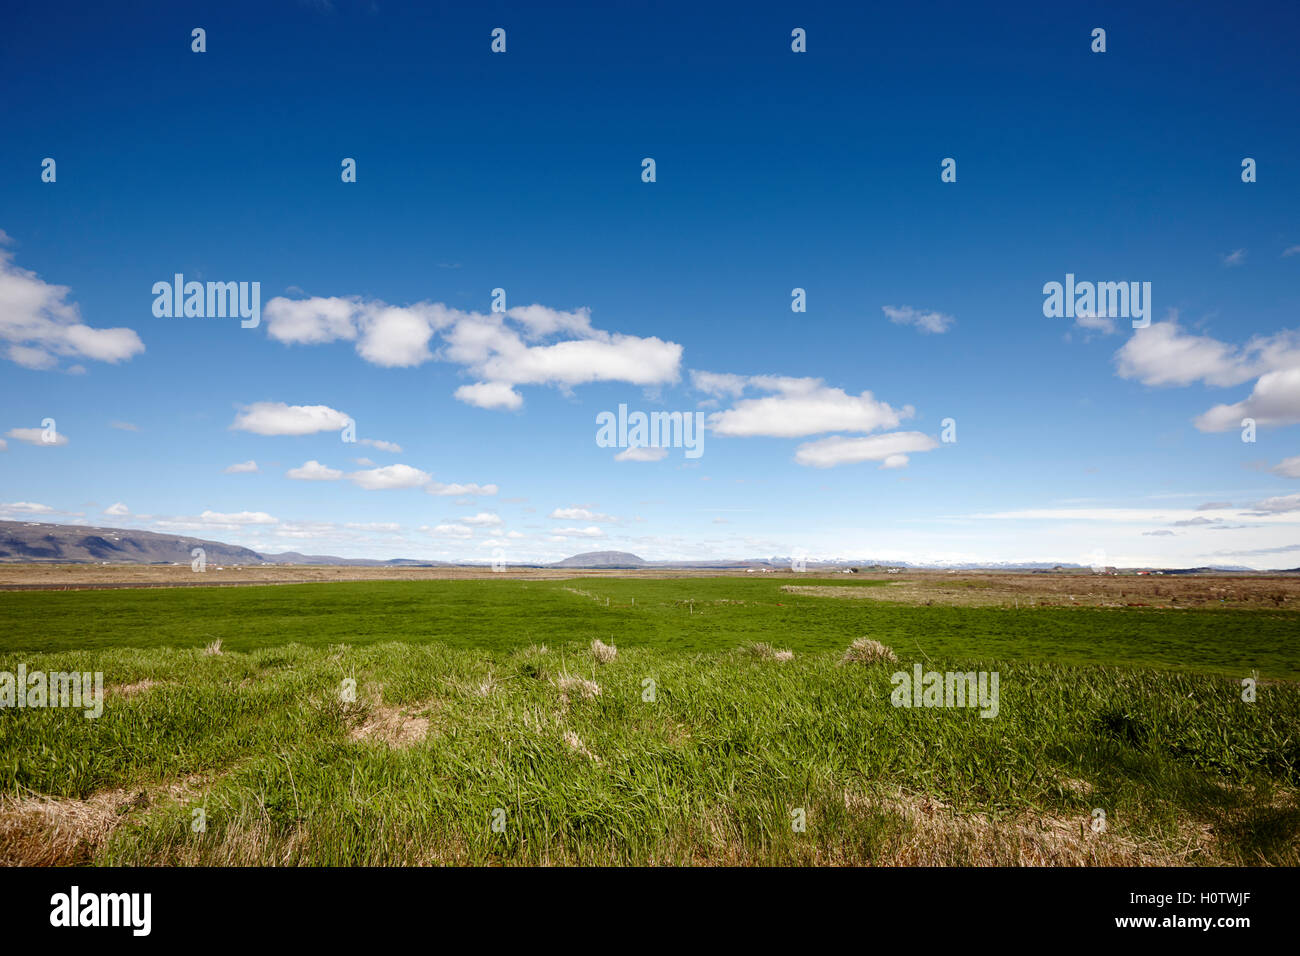 clouds in a blue sky over a lush fertile valley of farmland in Iceland - Stock Image